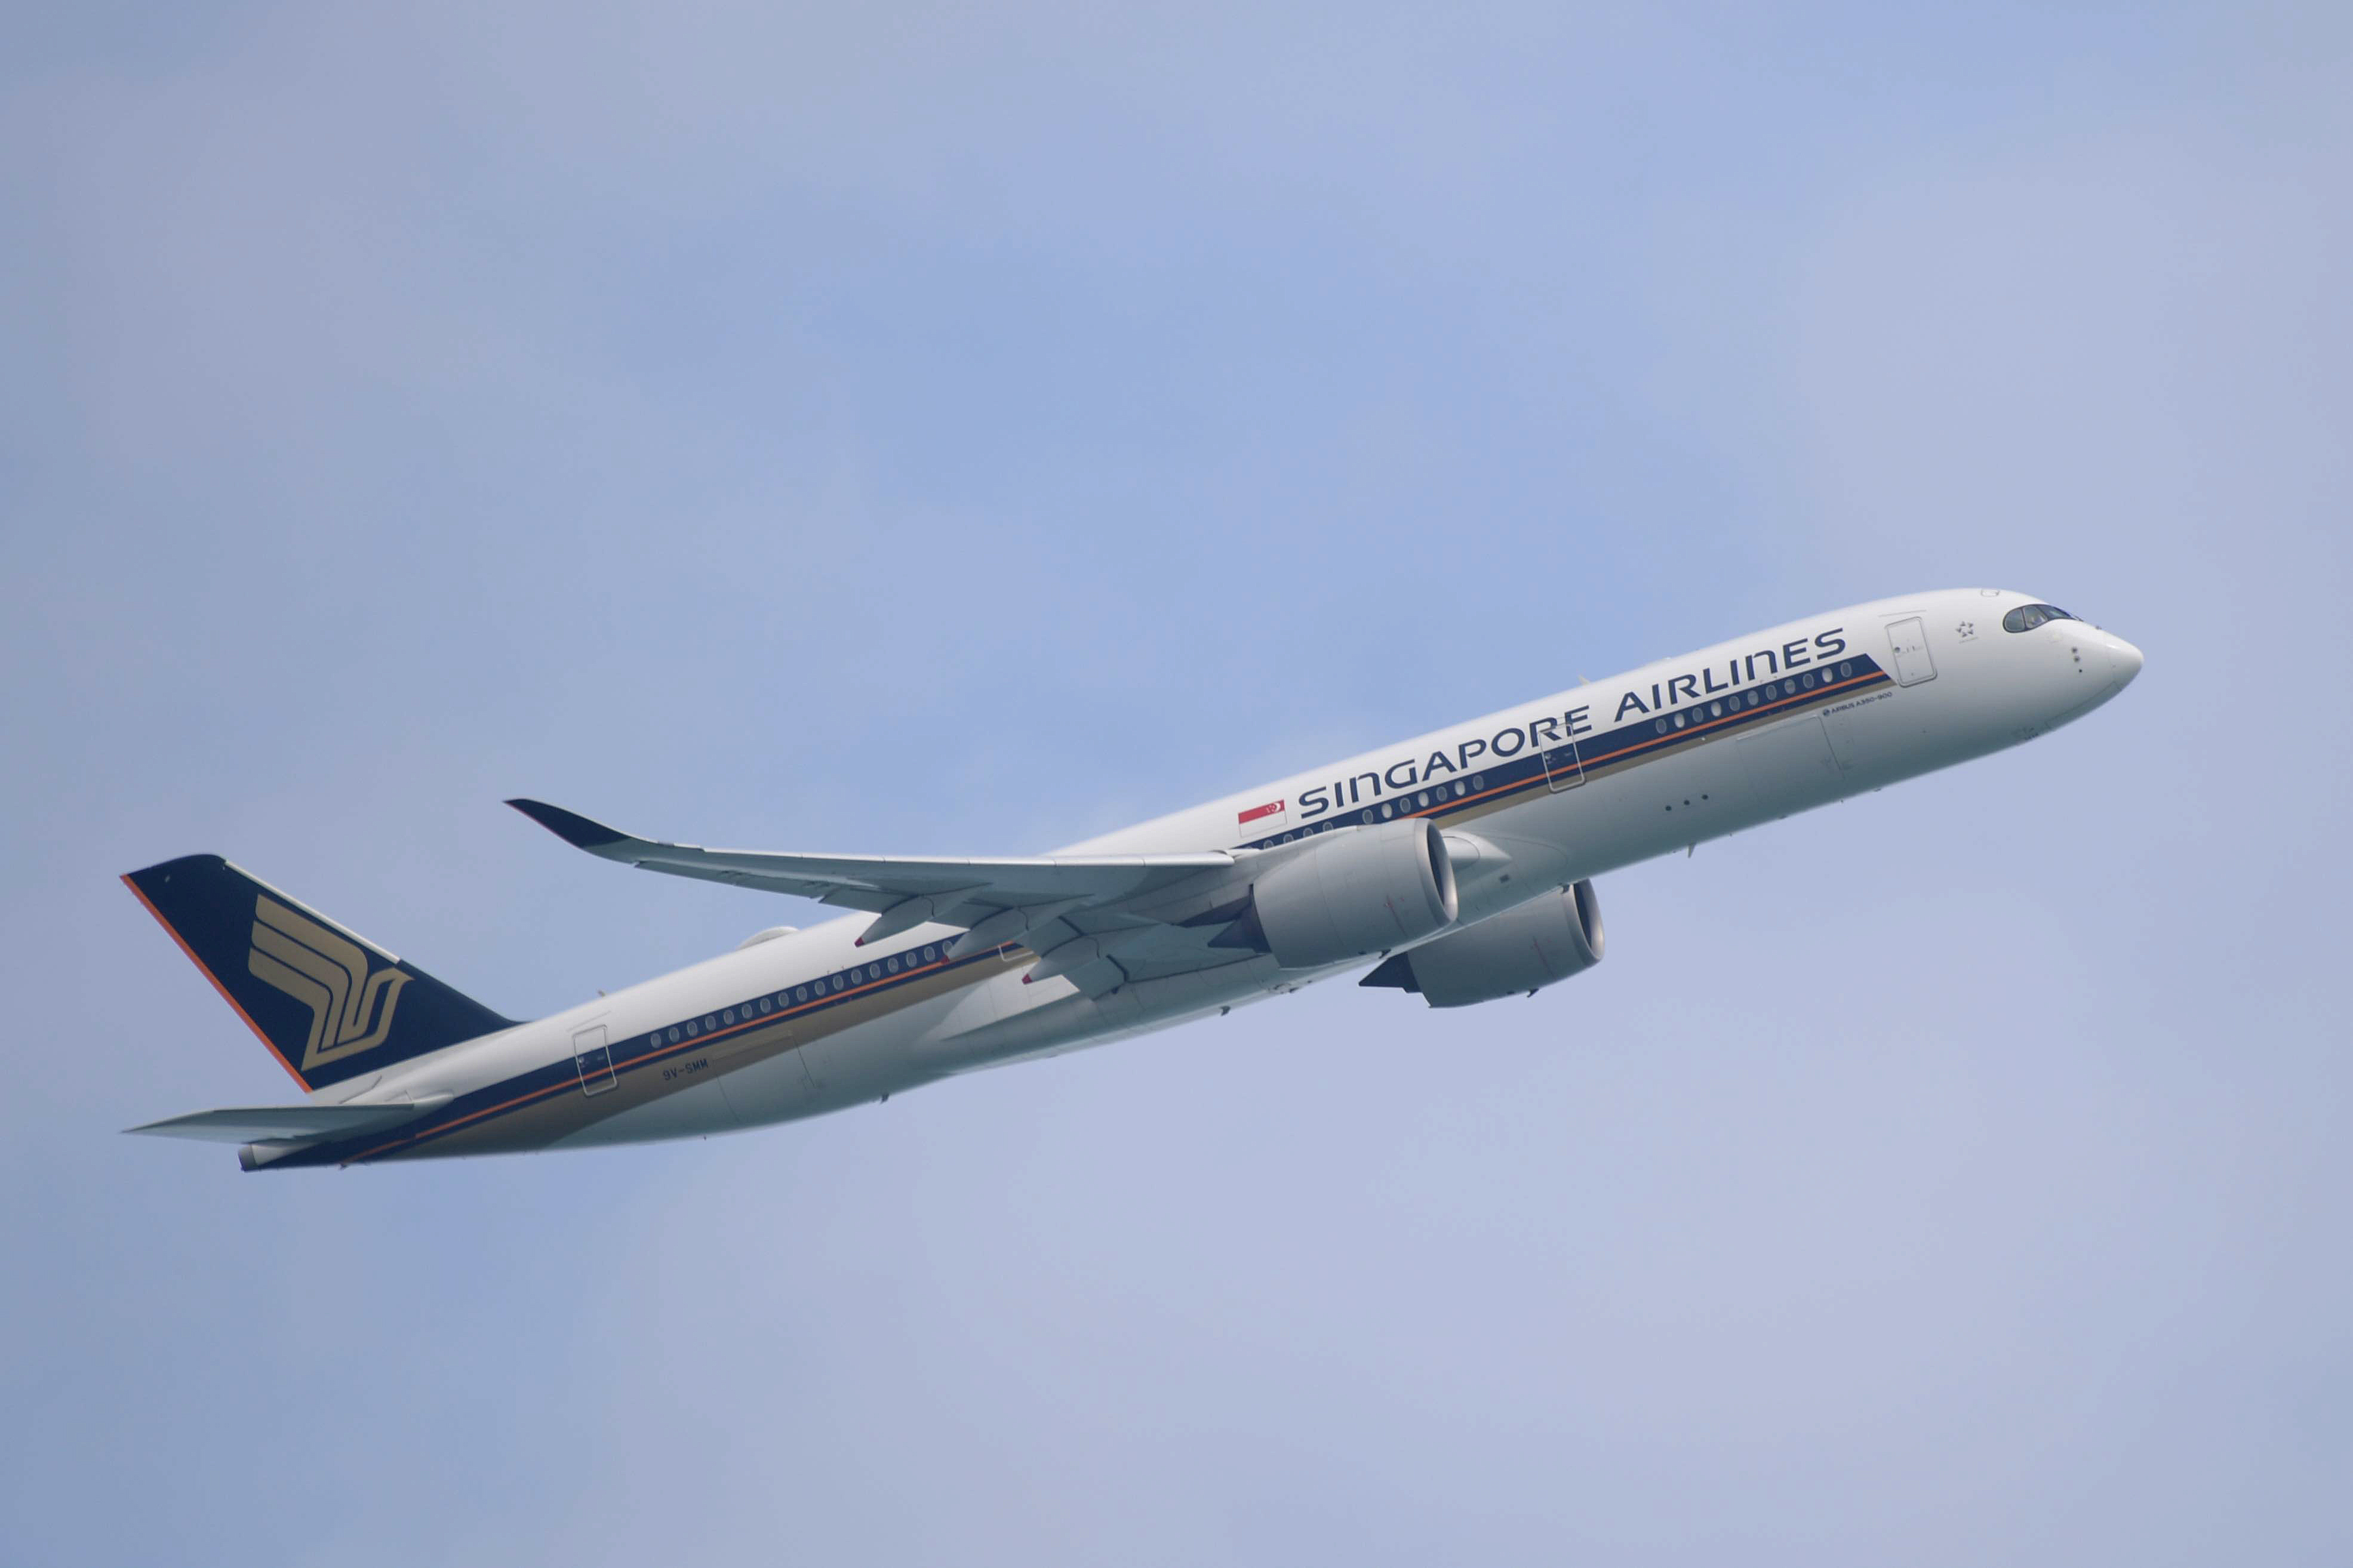 A Singapore Airlines Airbus A350-900 passenger plane takes off from Changi International Airport in Singapore.